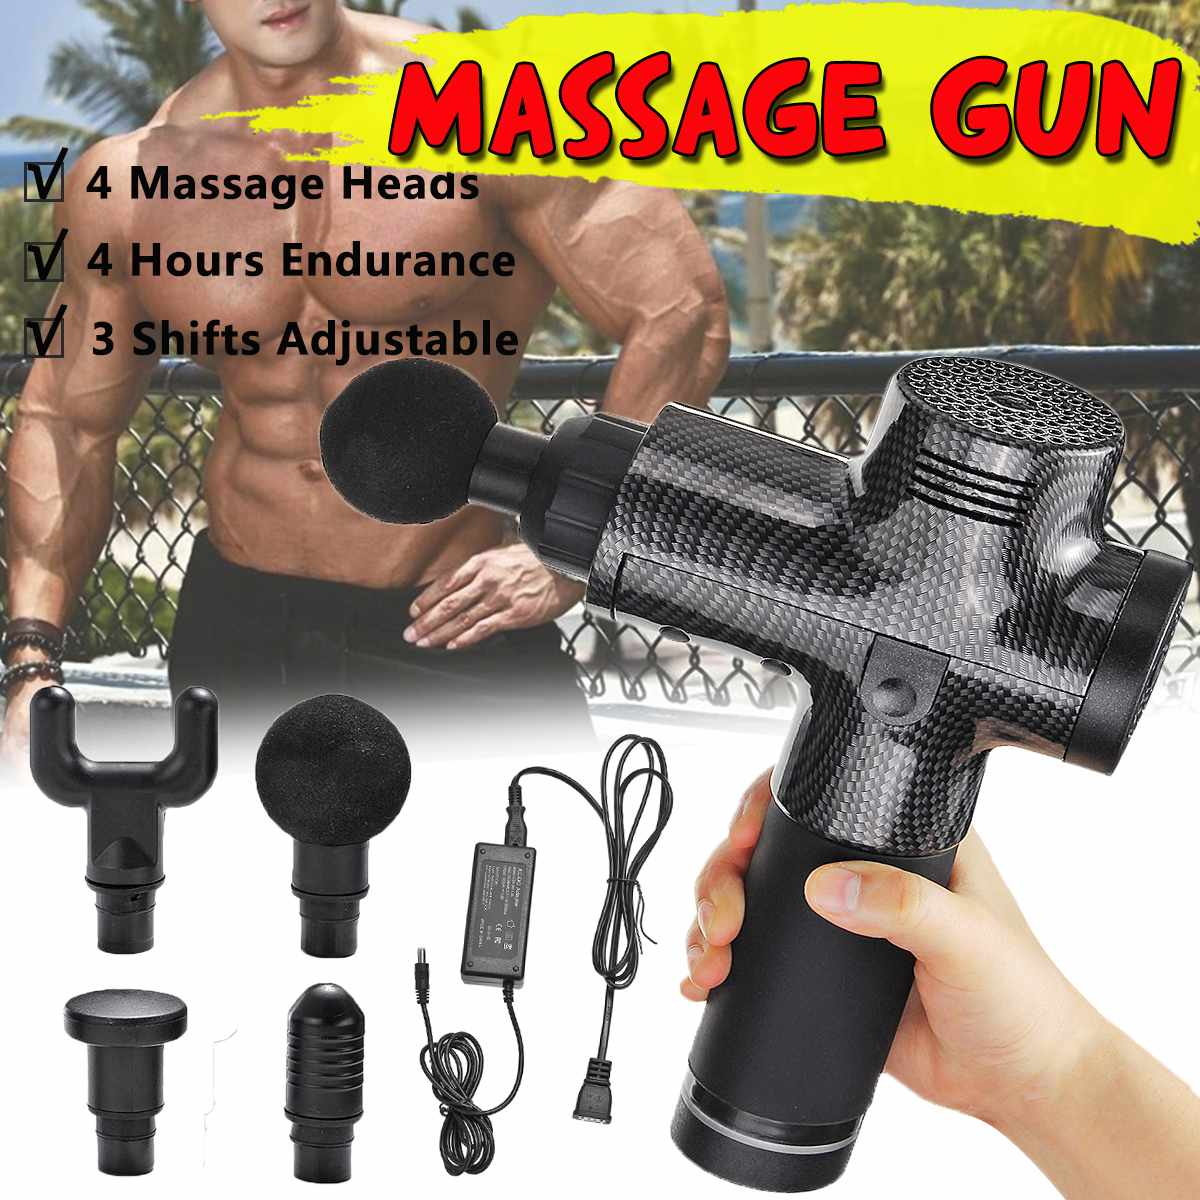 Deep Muscle Relaxation Massage Guns Electronic Therapy Body  Muscle Massager Rechargeable 3 Files 24V Relief Pain w/4 HeadsDeep Muscle Relaxation Massage Guns Electronic Therapy Body  Muscle Massager Rechargeable 3 Files 24V Relief Pain w/4 Heads